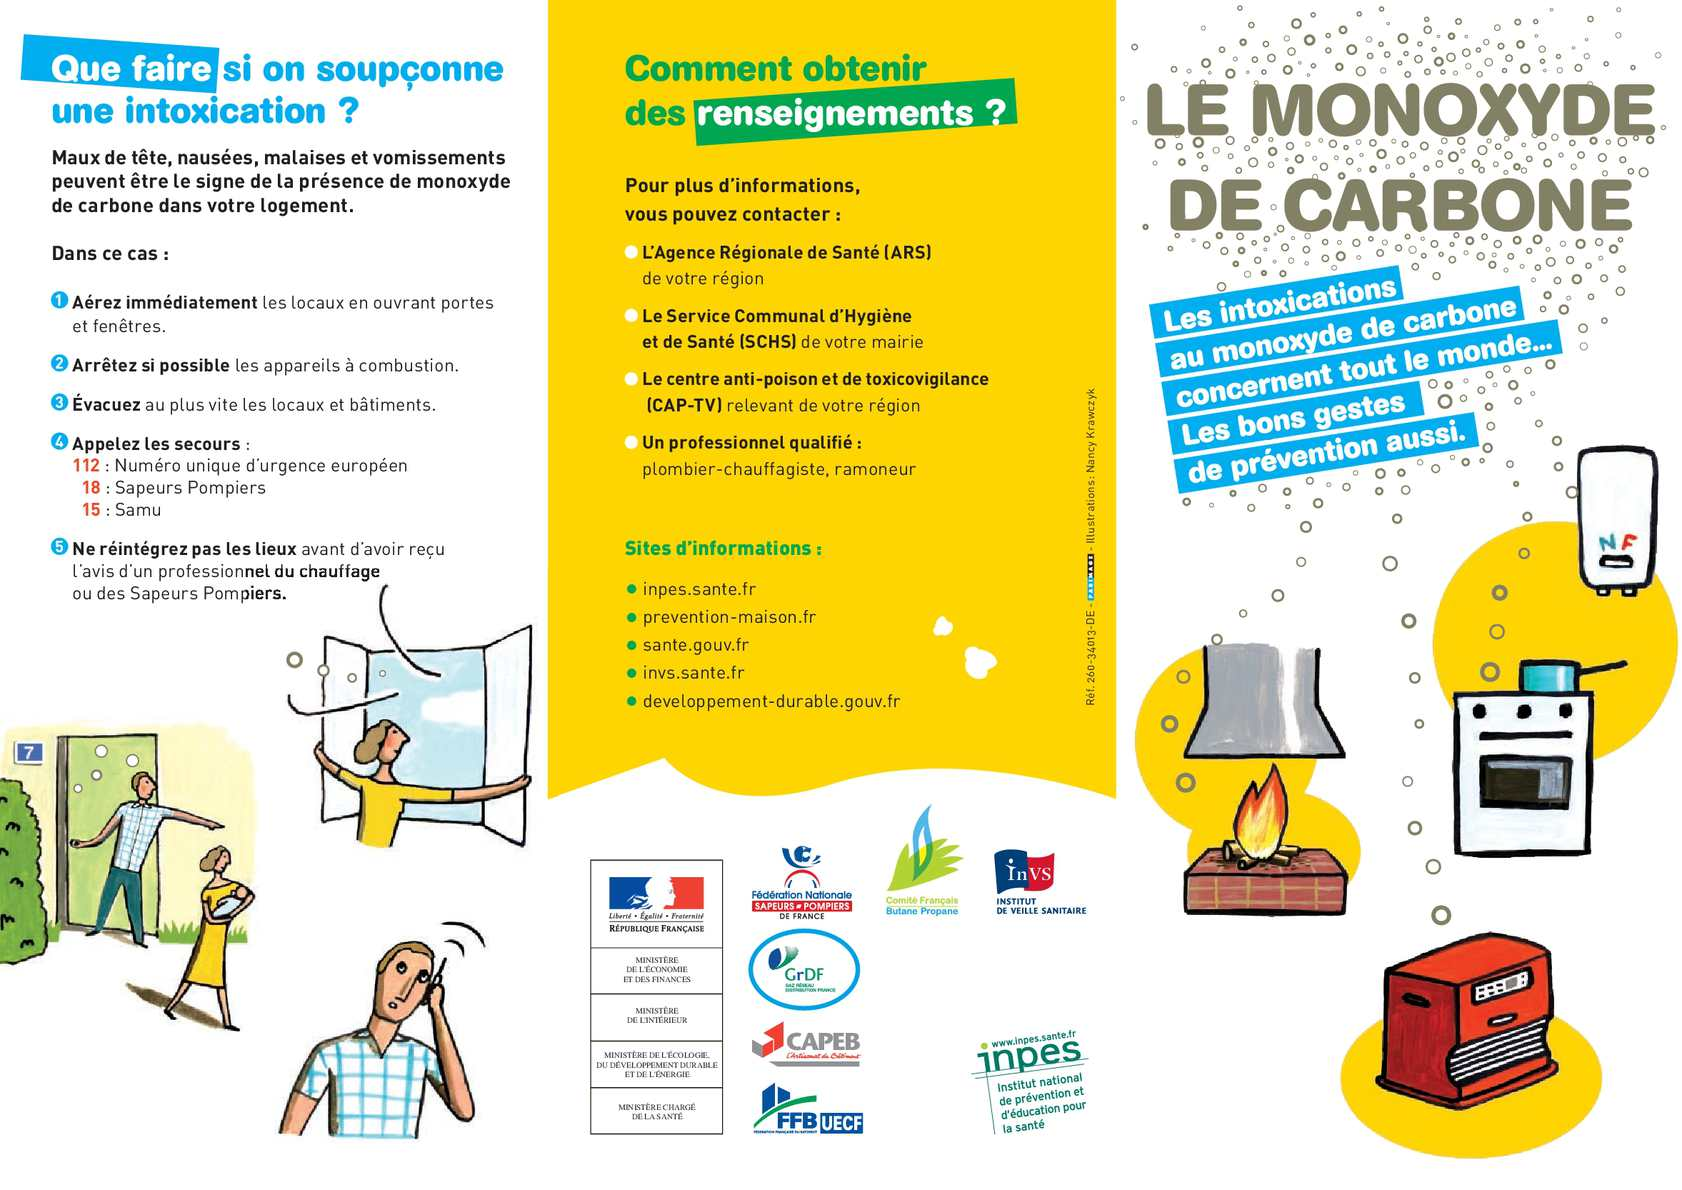 Prevention-maison.fr Calaméo Dépliant Monoxyde Carbone